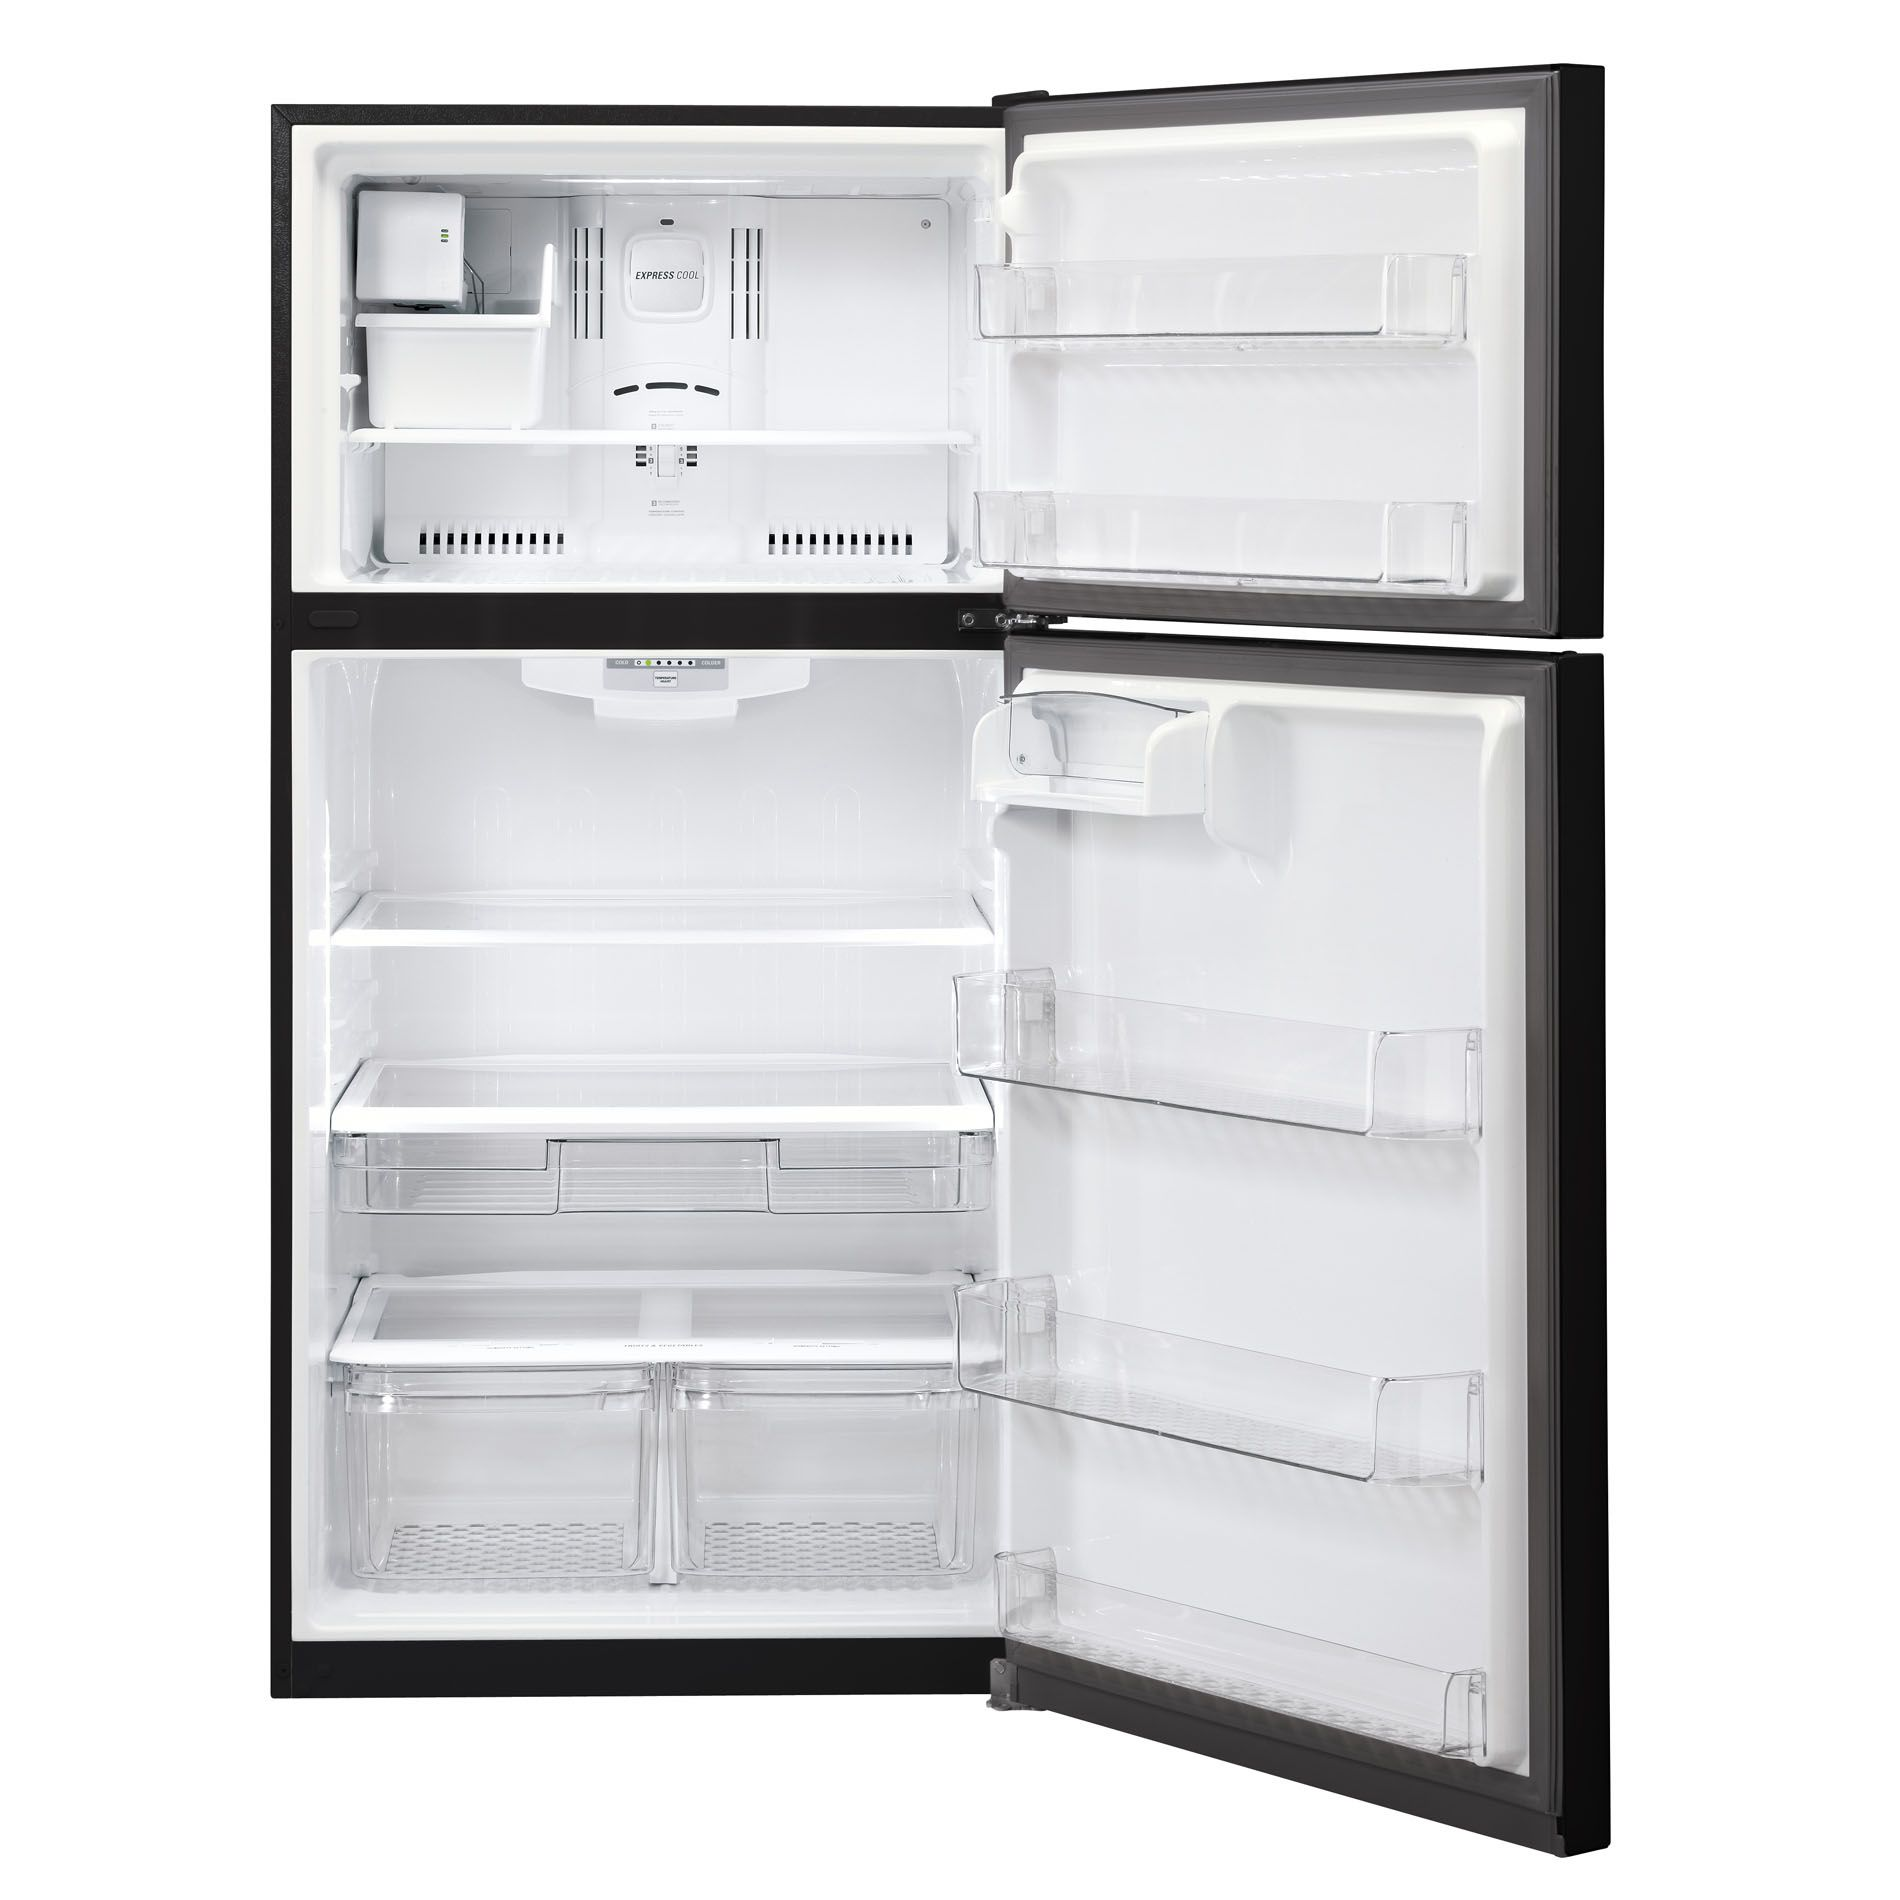 LG 24 cu. ft. Top-Freezer Refrigerator — Black